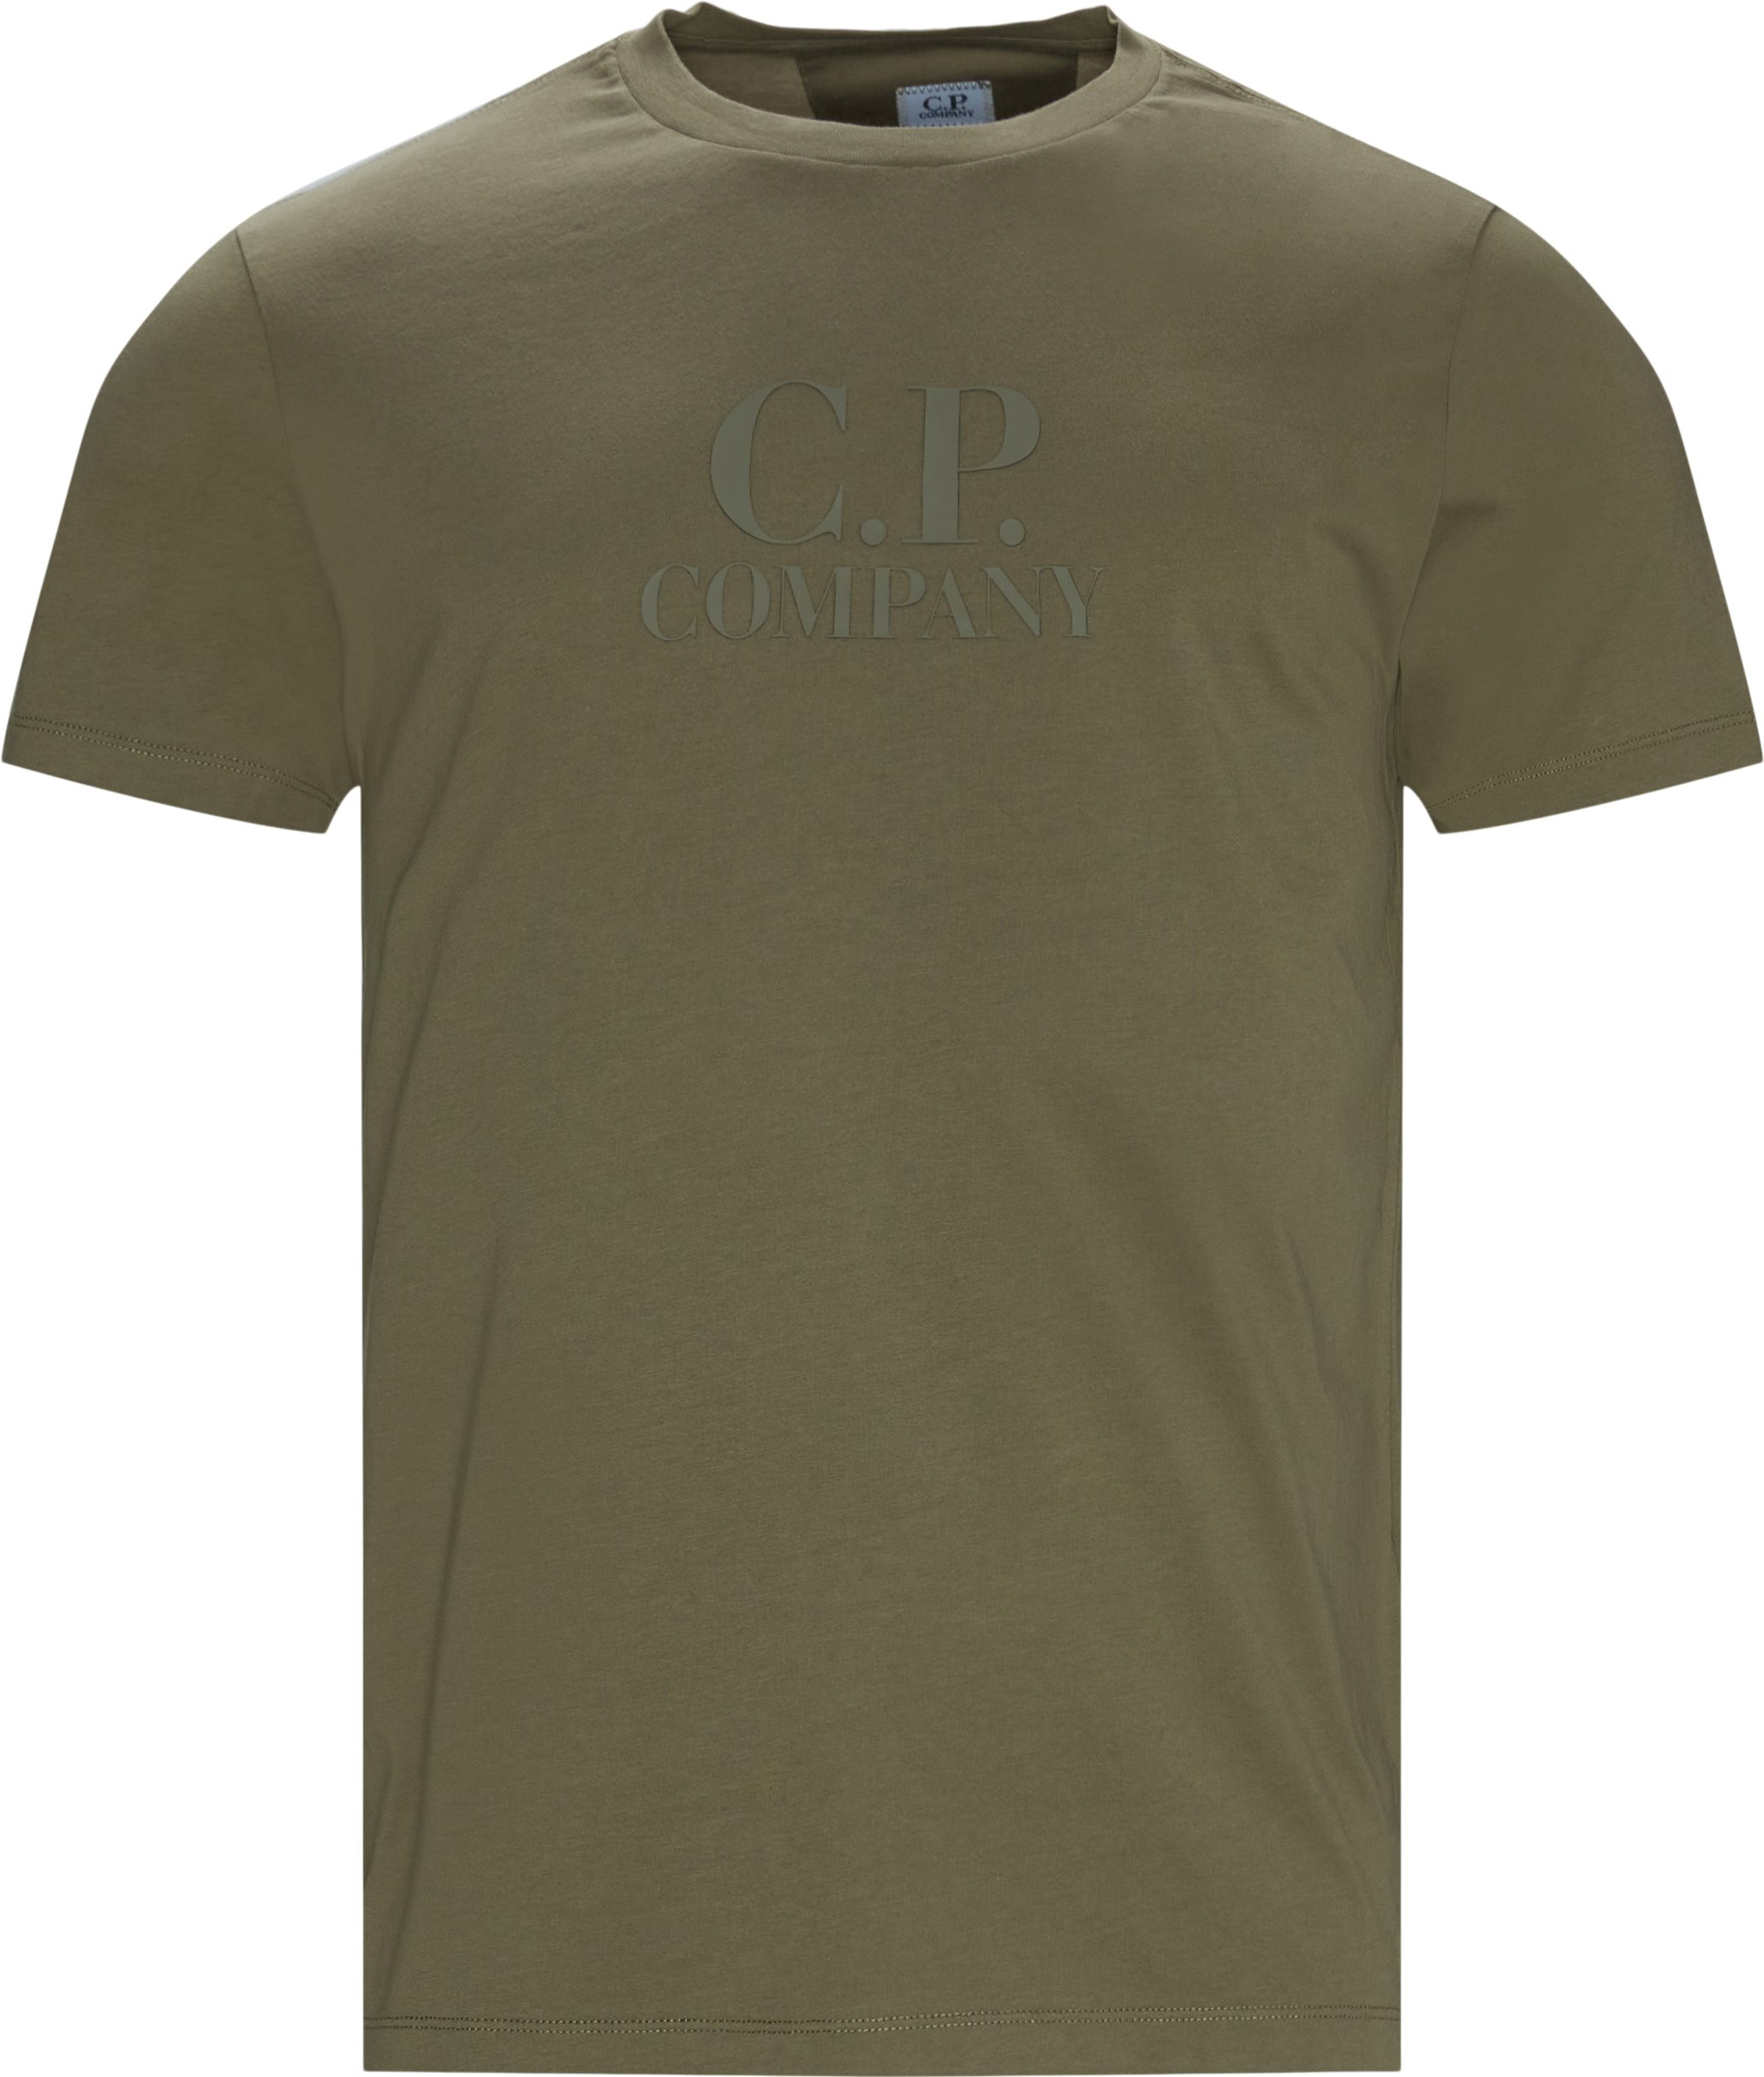 Jersey Tee - T-shirts - Regular fit - Army